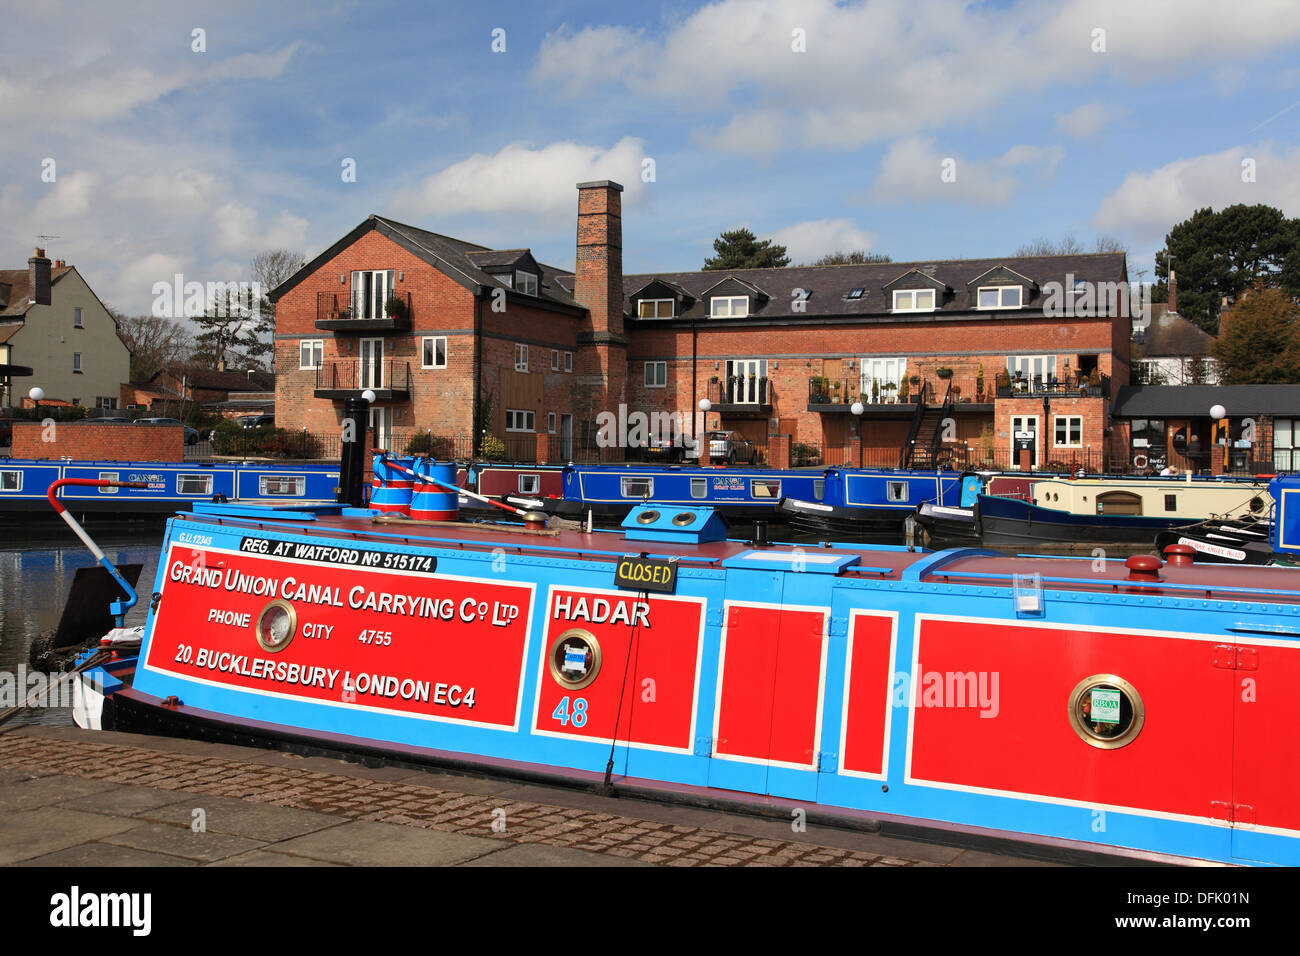 Narrowboats moored in the regenerated canal basin at the end of an arm of the Grand Union Canal at Market Harborough - Stock Image